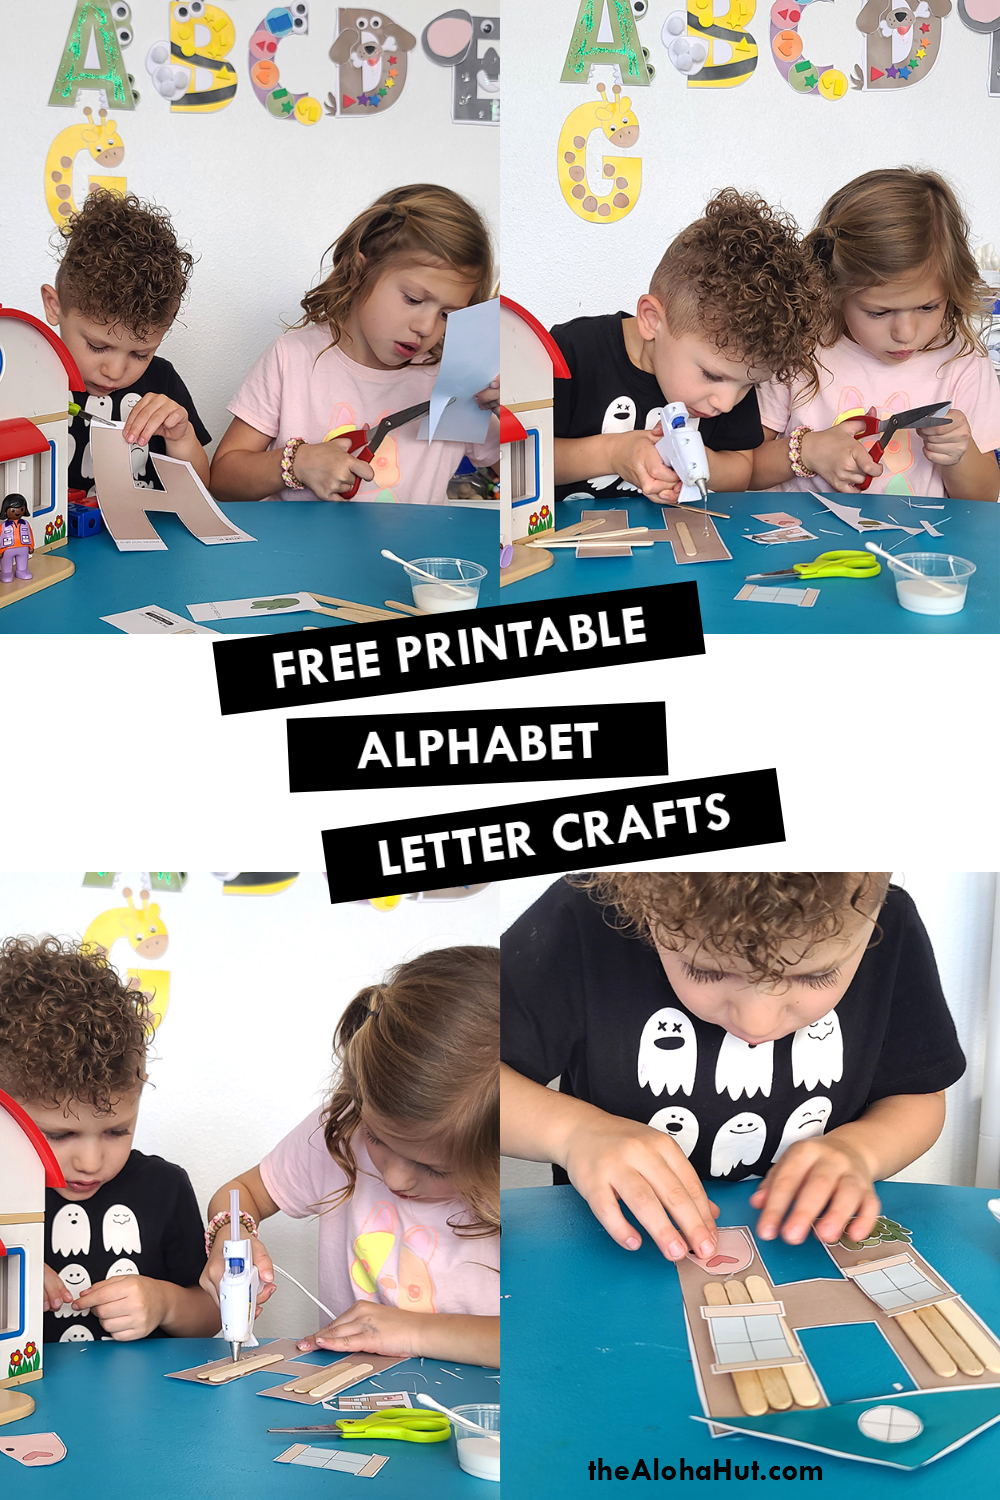 Alphabet Letter Crafts - Letter H - free printable 4 by the Aloha Hut